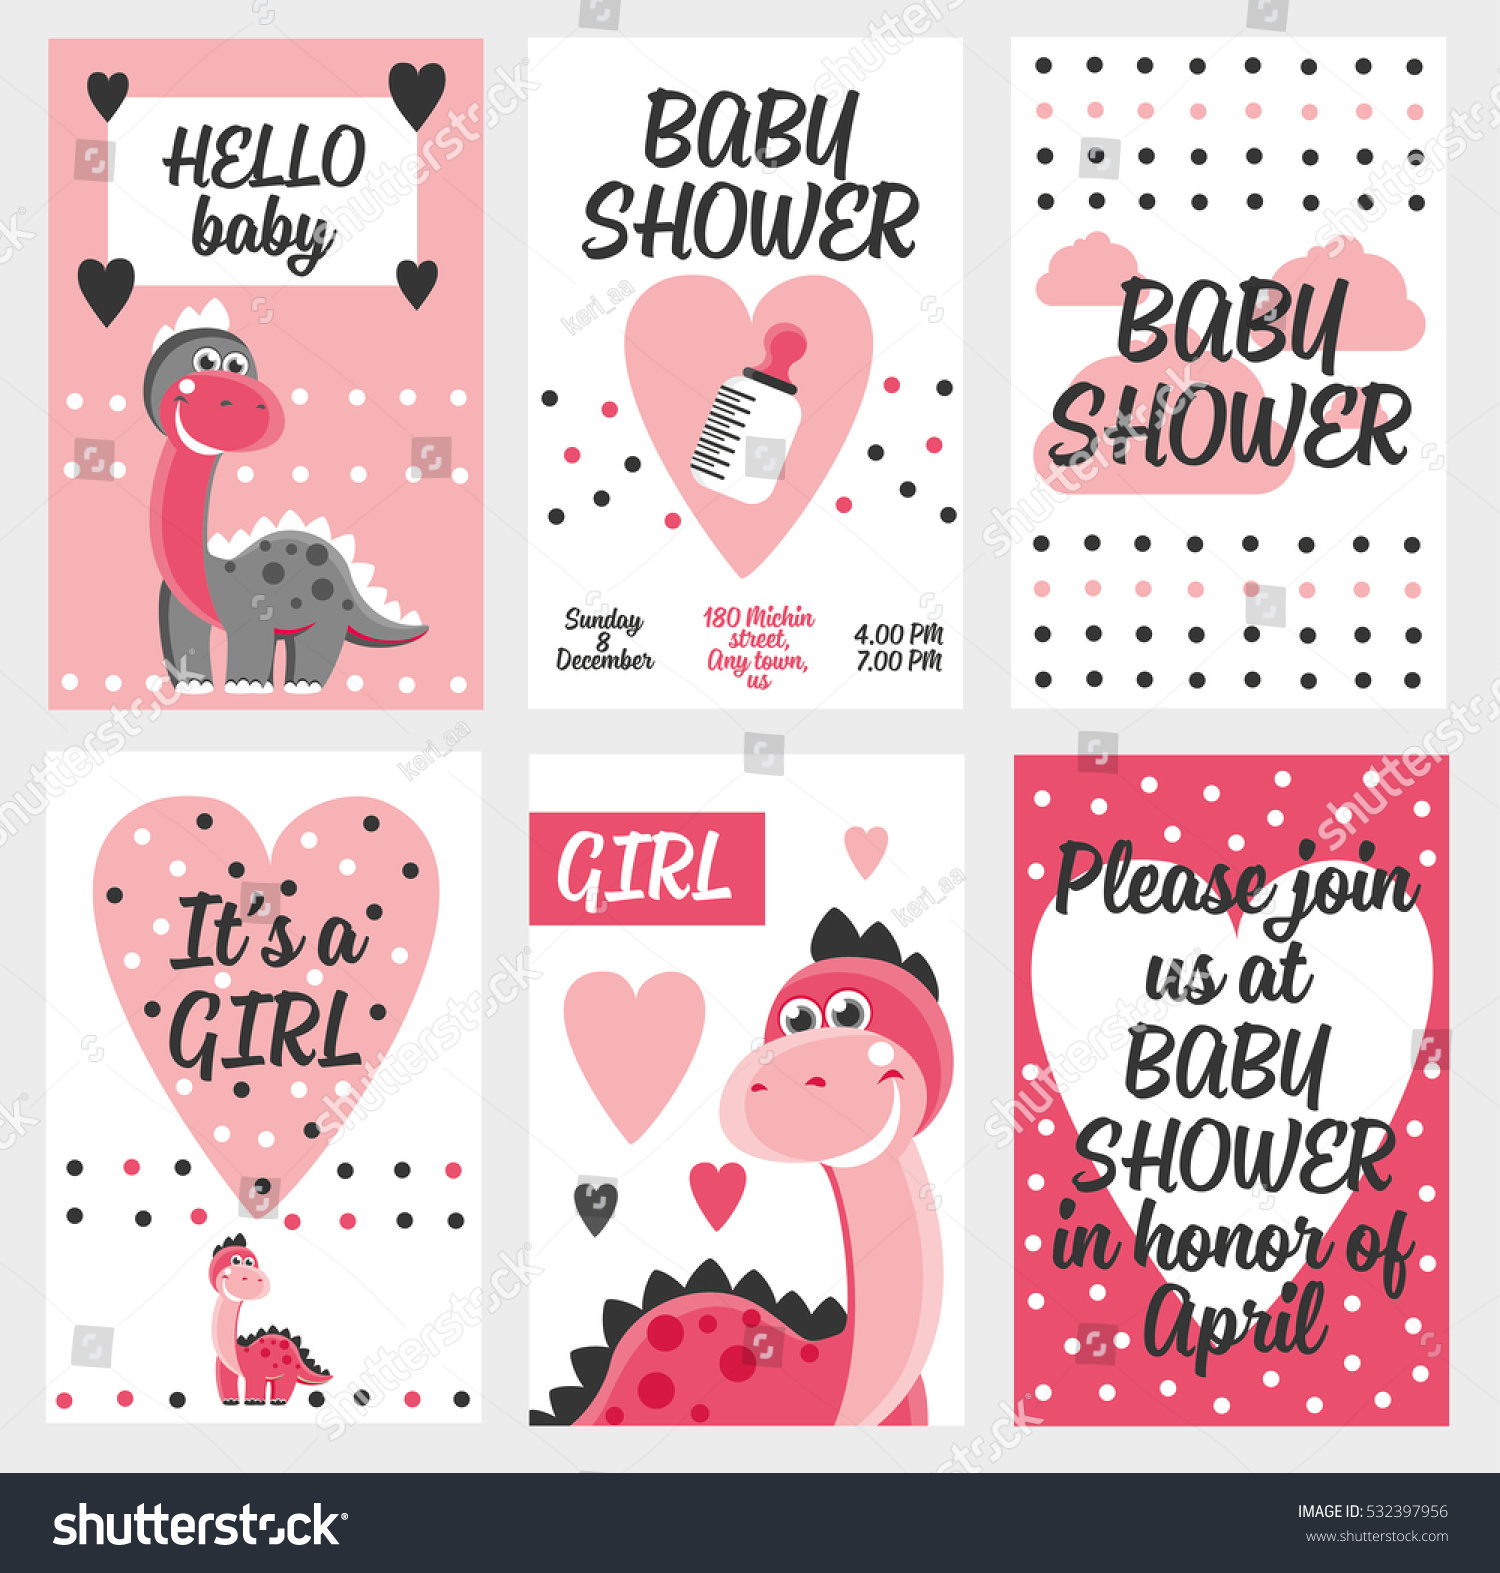 Set Of 6 Cute Creative Cards Templates With Baby Shower Theme Design